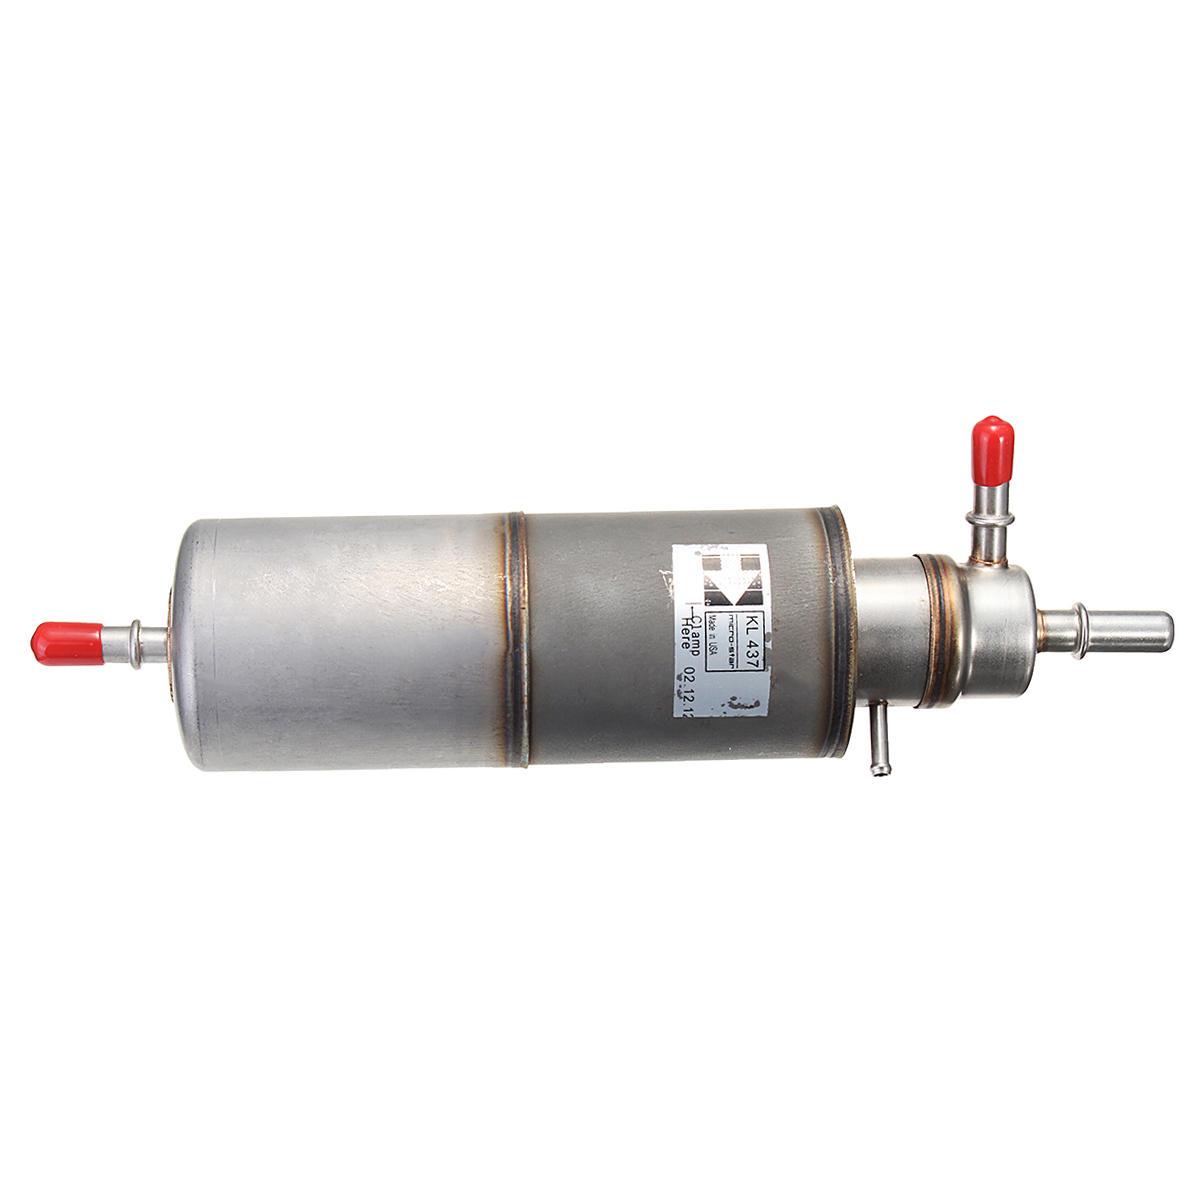 hight resolution of new oil fuel filter for mercedes model ml55 amg ml320 ml430